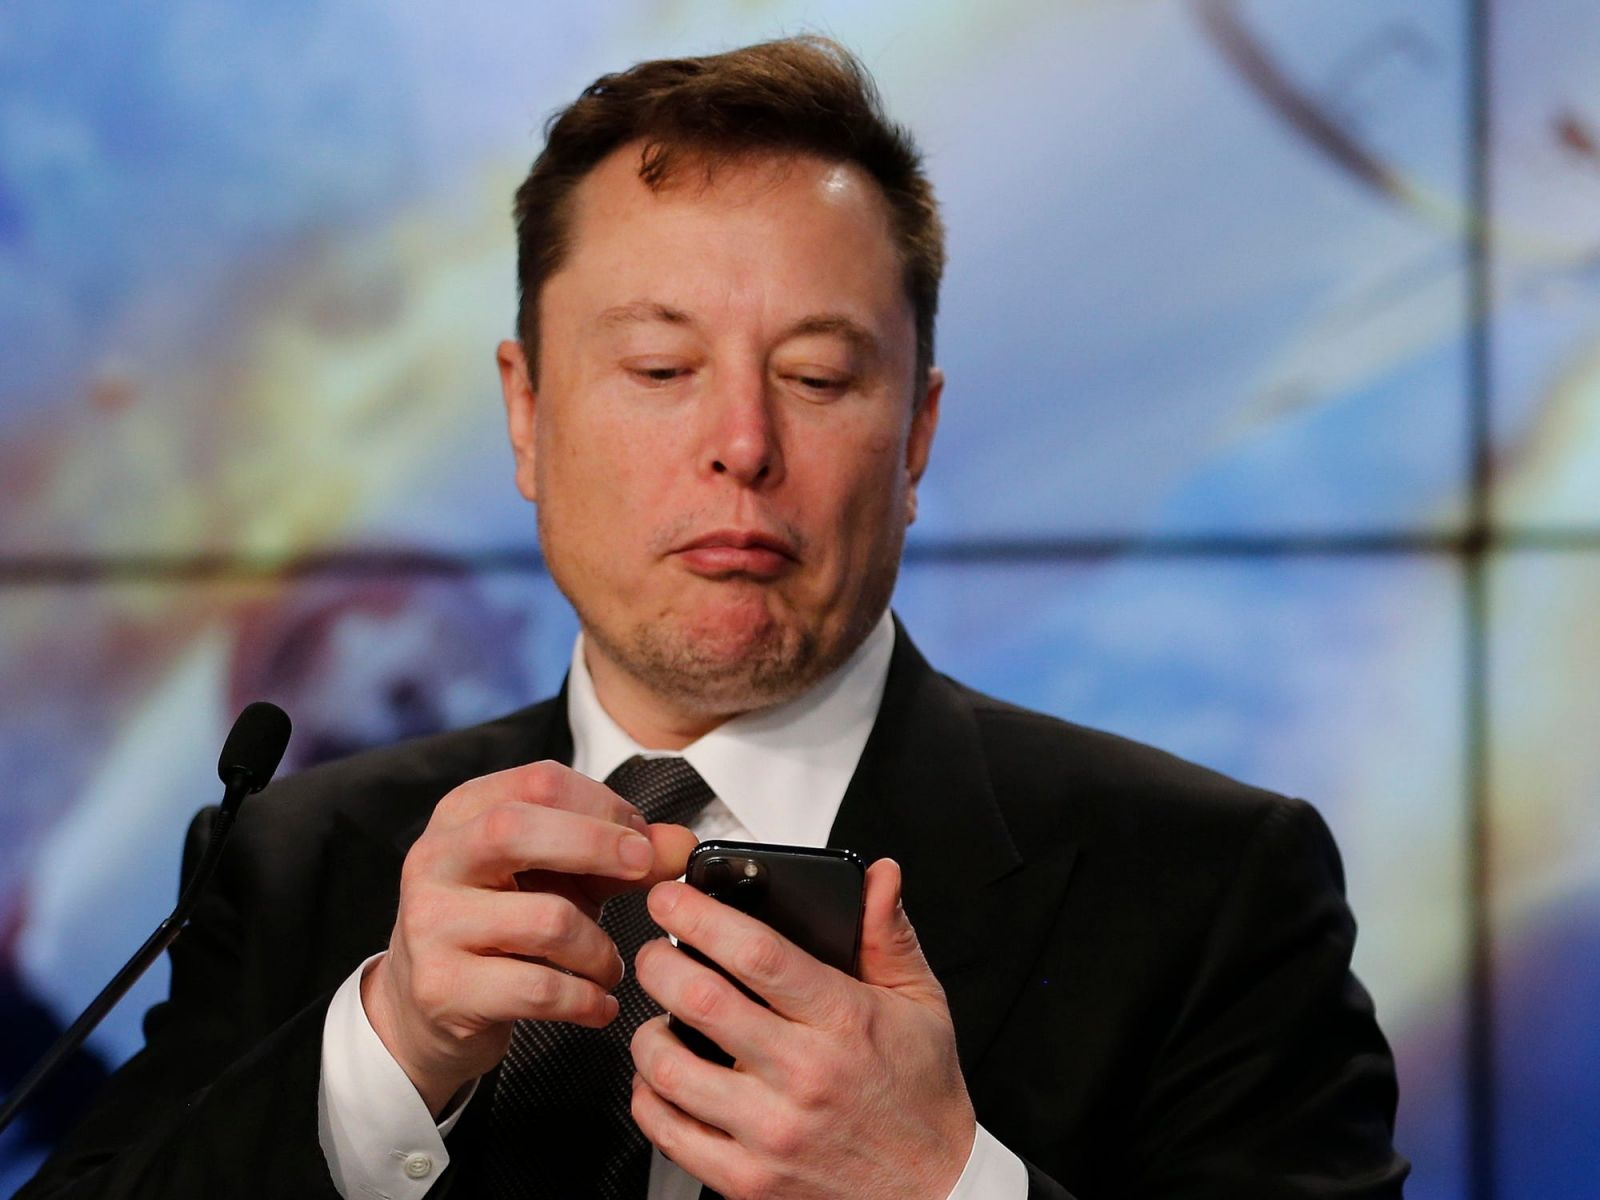 Elon Musk Is Urging People to Switch to Signal